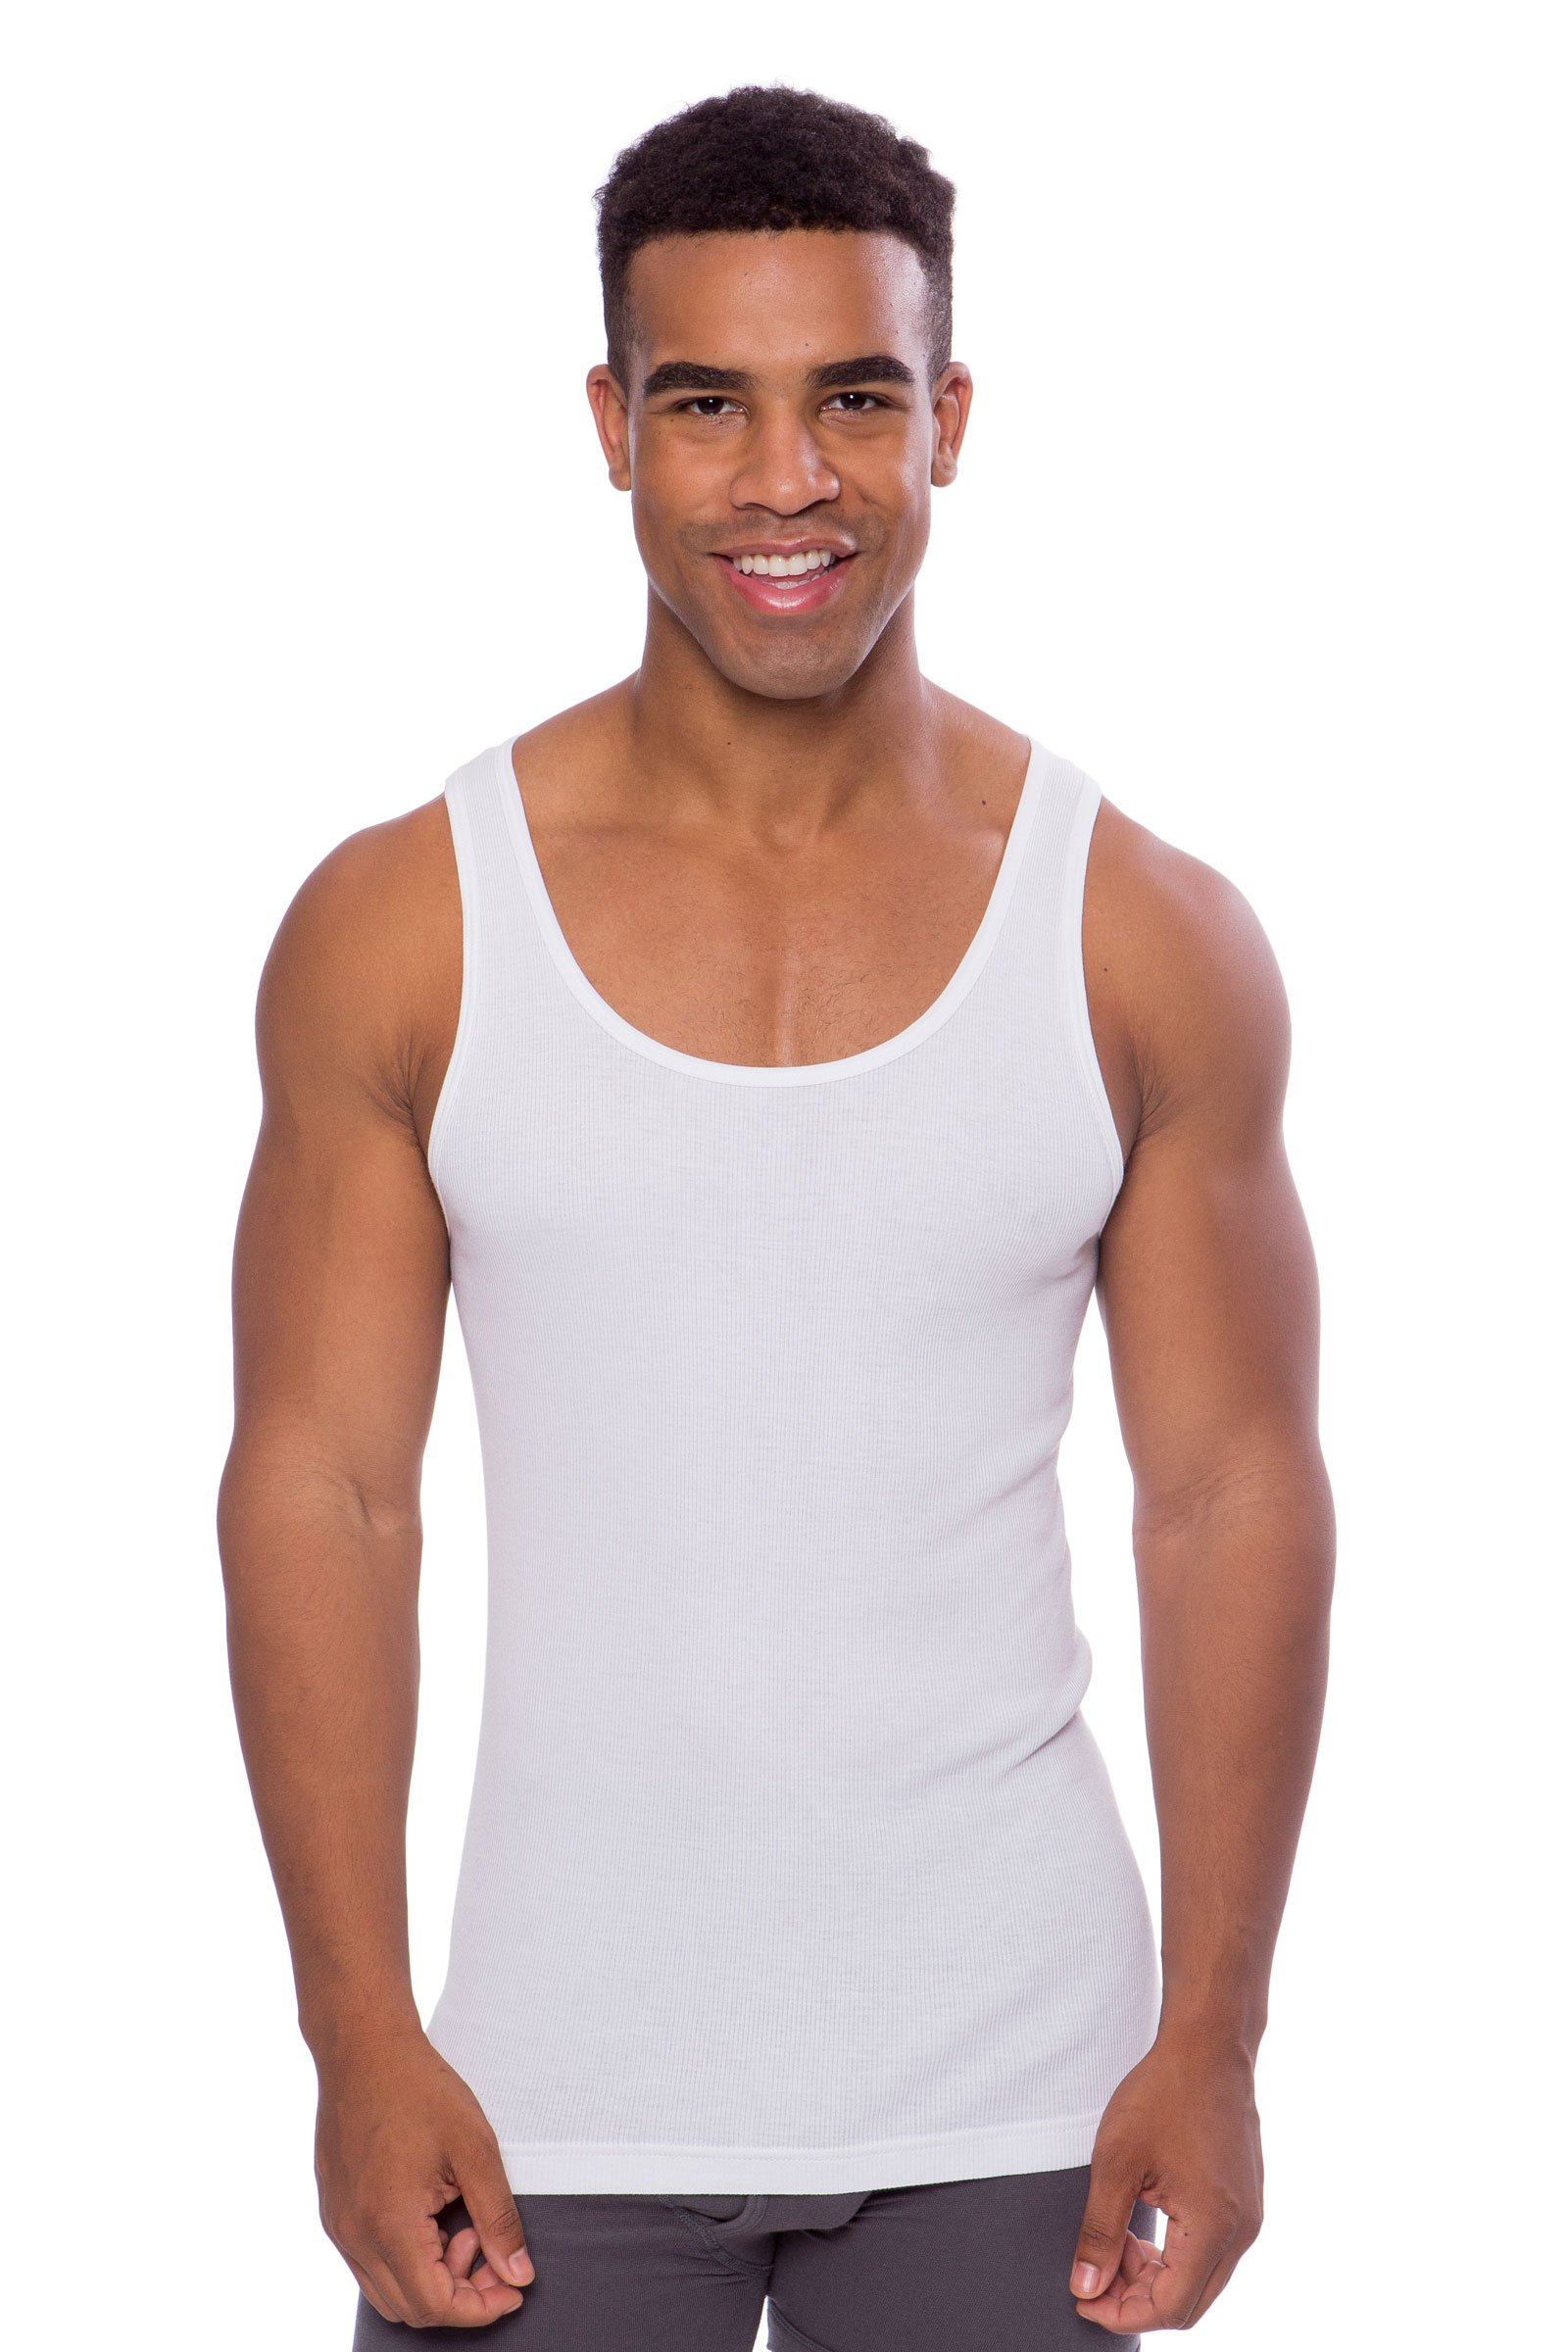 Men's Ribbed Tank Top - Single Pack Undershirt In Bamboo Viscose by Texere (Natural White, Large/Tall) Best Birthday Gifts For Dad Father Husband MB6003-NWH-LT